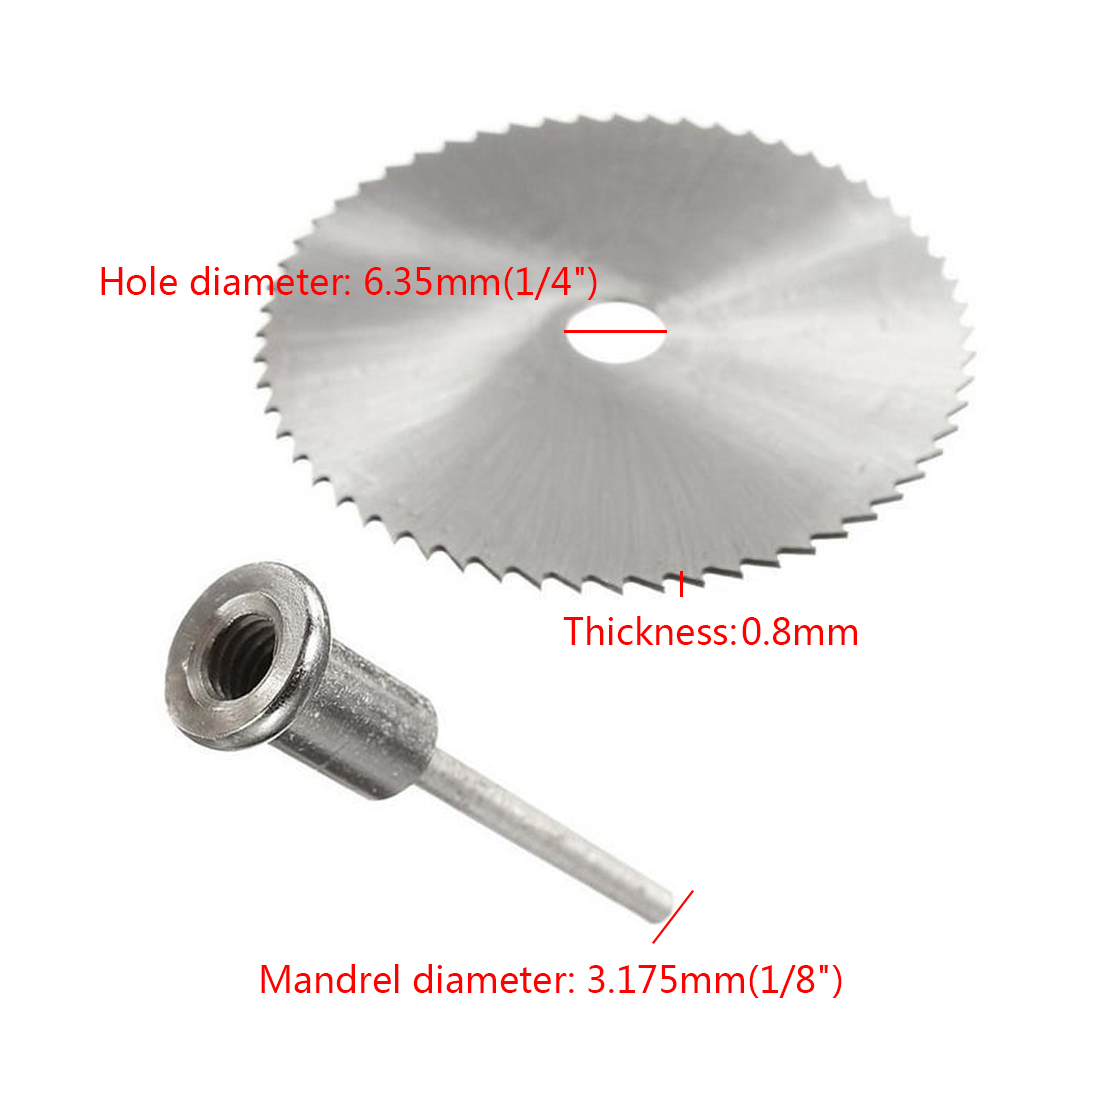 Wood Cutting Discs Drill Mandrel Mini HSS Circular Saw Blade Jig Saw Rotary Tool For Dremel Metal Cutter Power Tool Set omy 6pcs set mini circular saw blade woodworking cutting discs drill for rotary tools dremel metal cutter power tool mandrel set